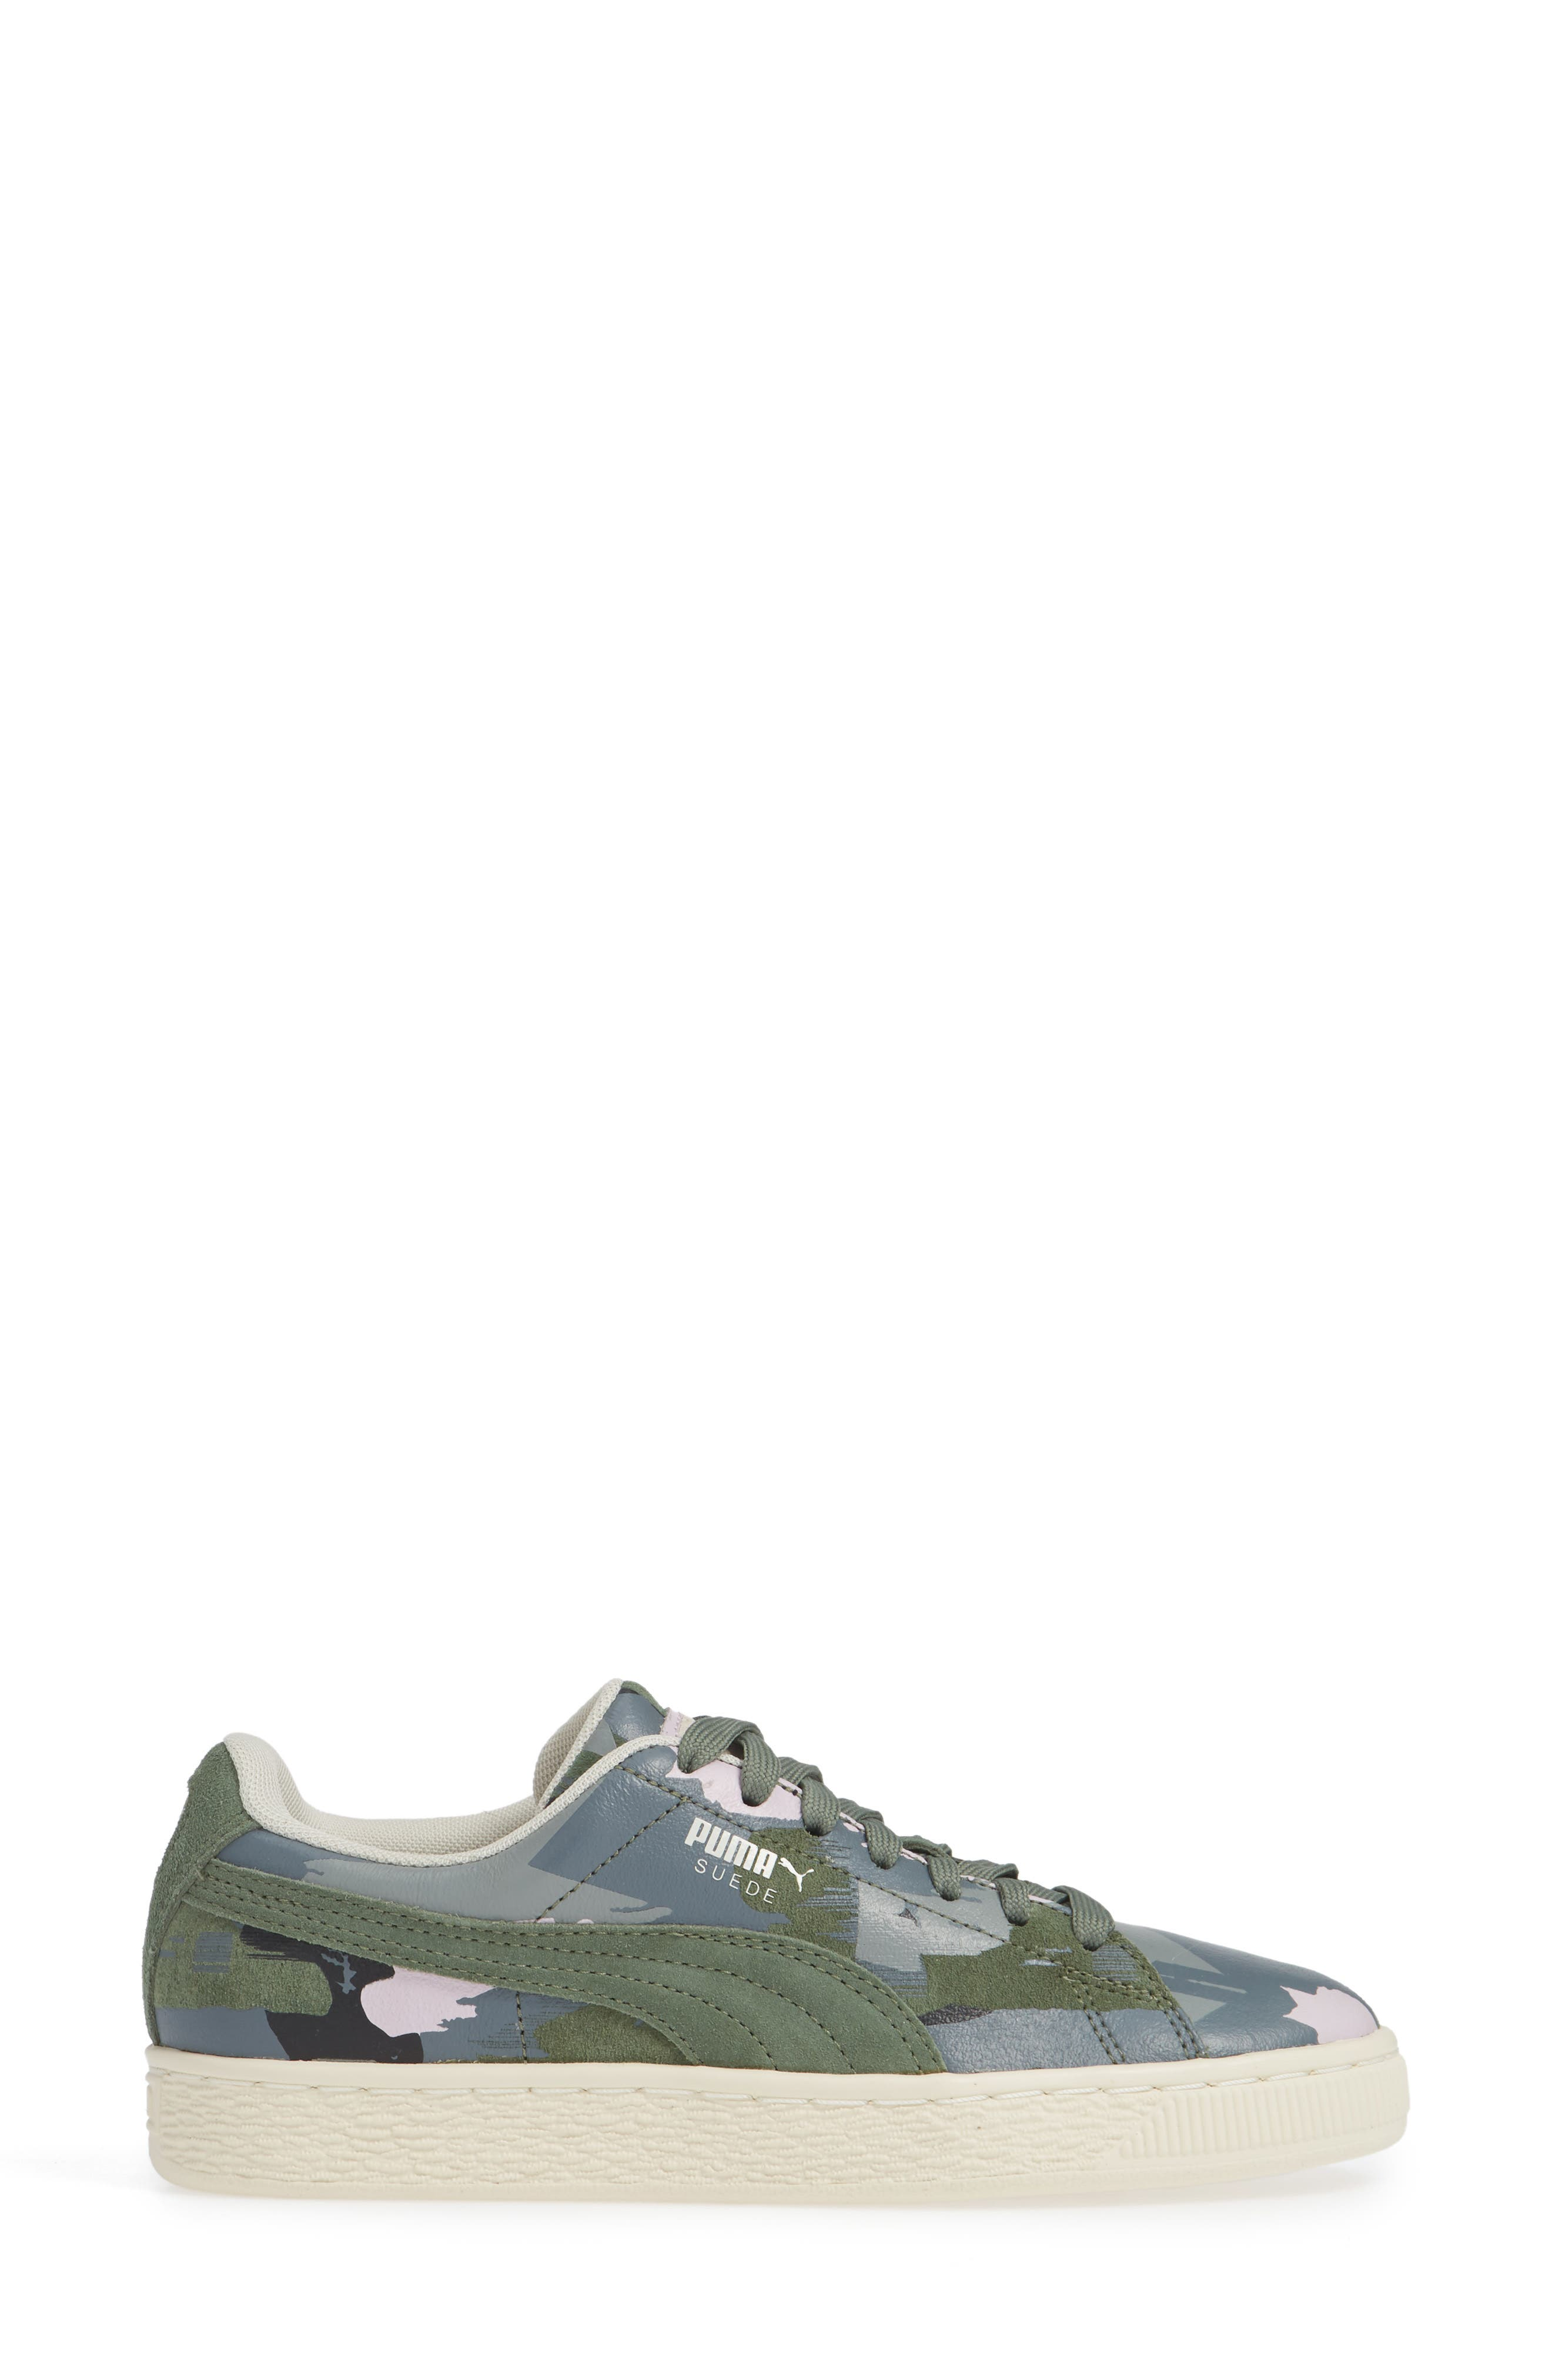 'Suede Classic' Sneaker,                             Alternate thumbnail 3, color,                             301